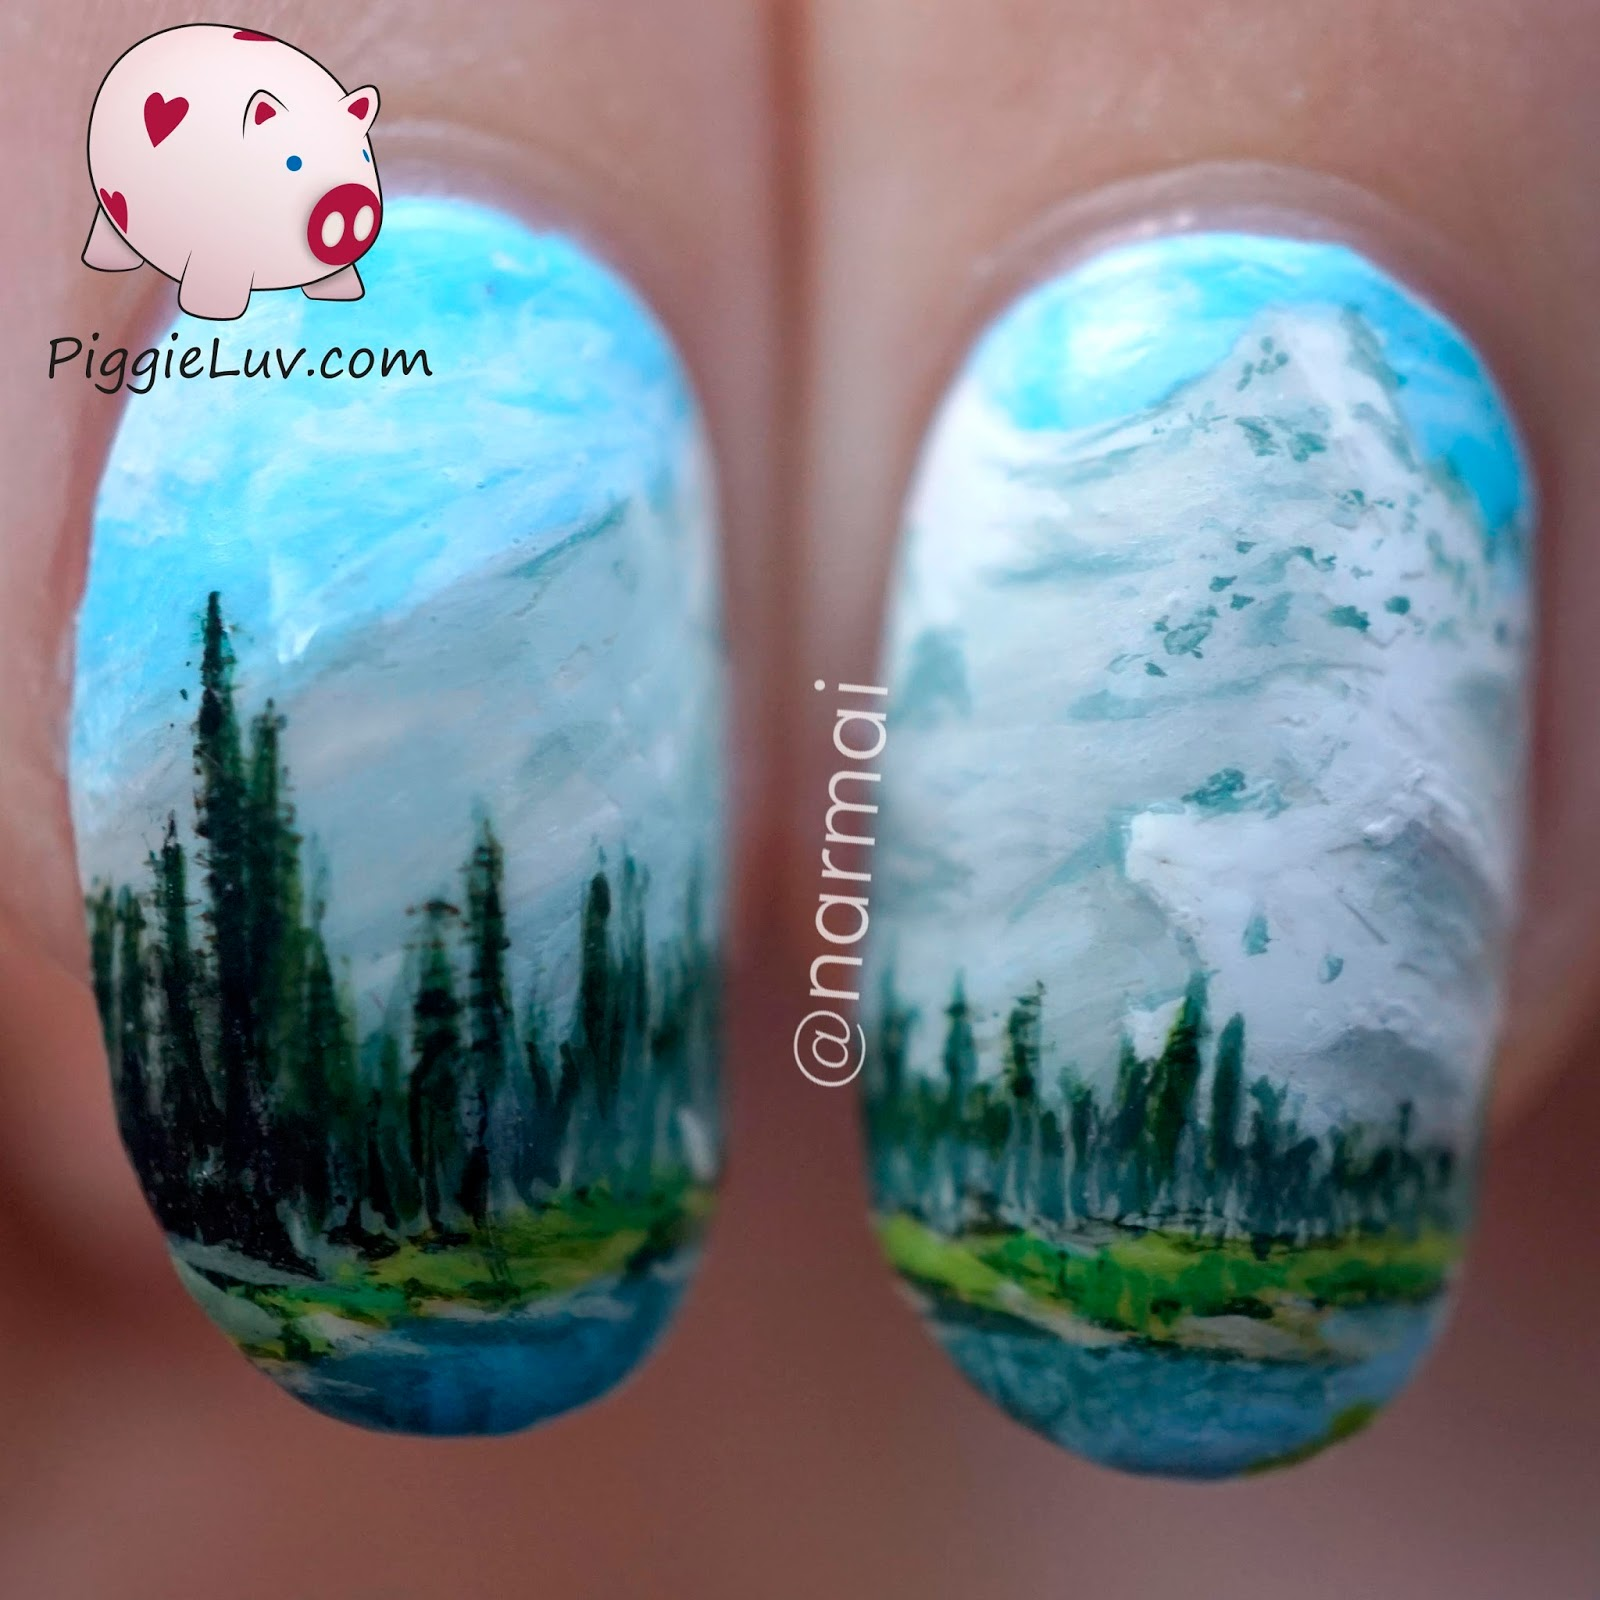 Piggieluv nail art inspired by a bob ross painting painting on nails is a lot different from painting on canvas first of all its a different surface nails are very smooth even though sometimes ill add prinsesfo Gallery